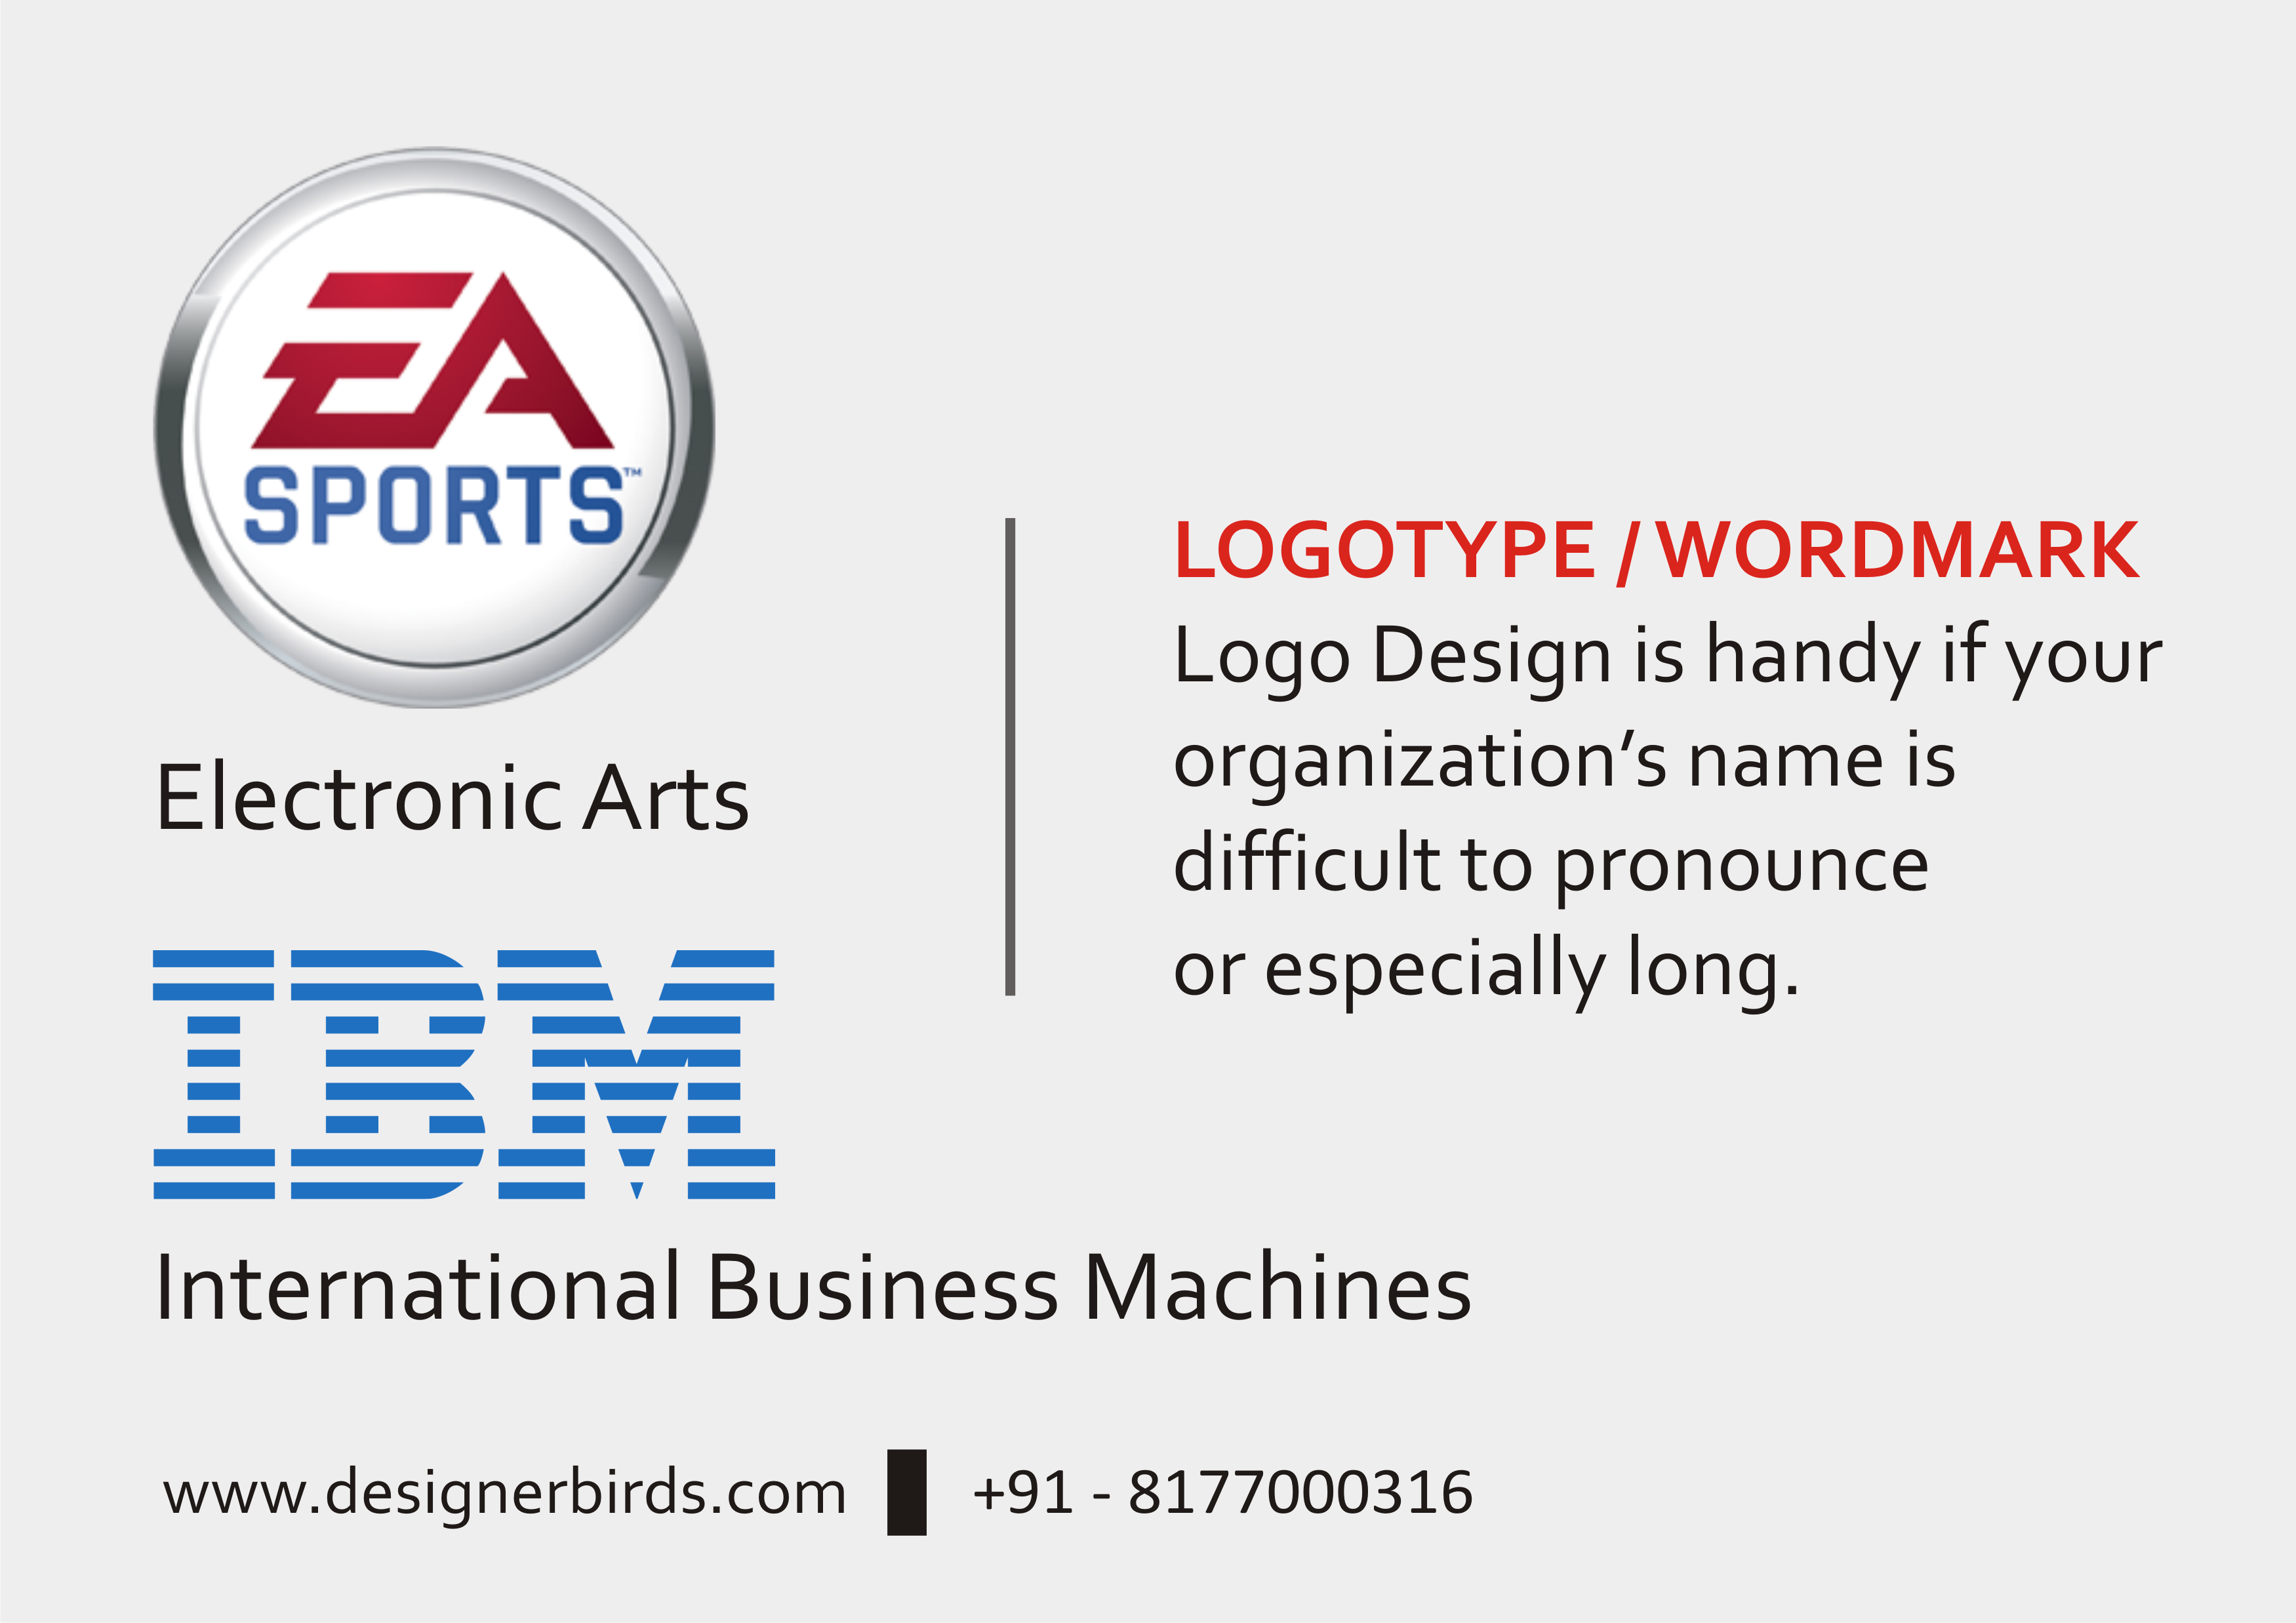 Logotype Wordmark Design Is Handy If Your Organization S Name Is Difficult To Pronounce Or Especially Word Mark Logo Wordmark Logo Design Logo Design